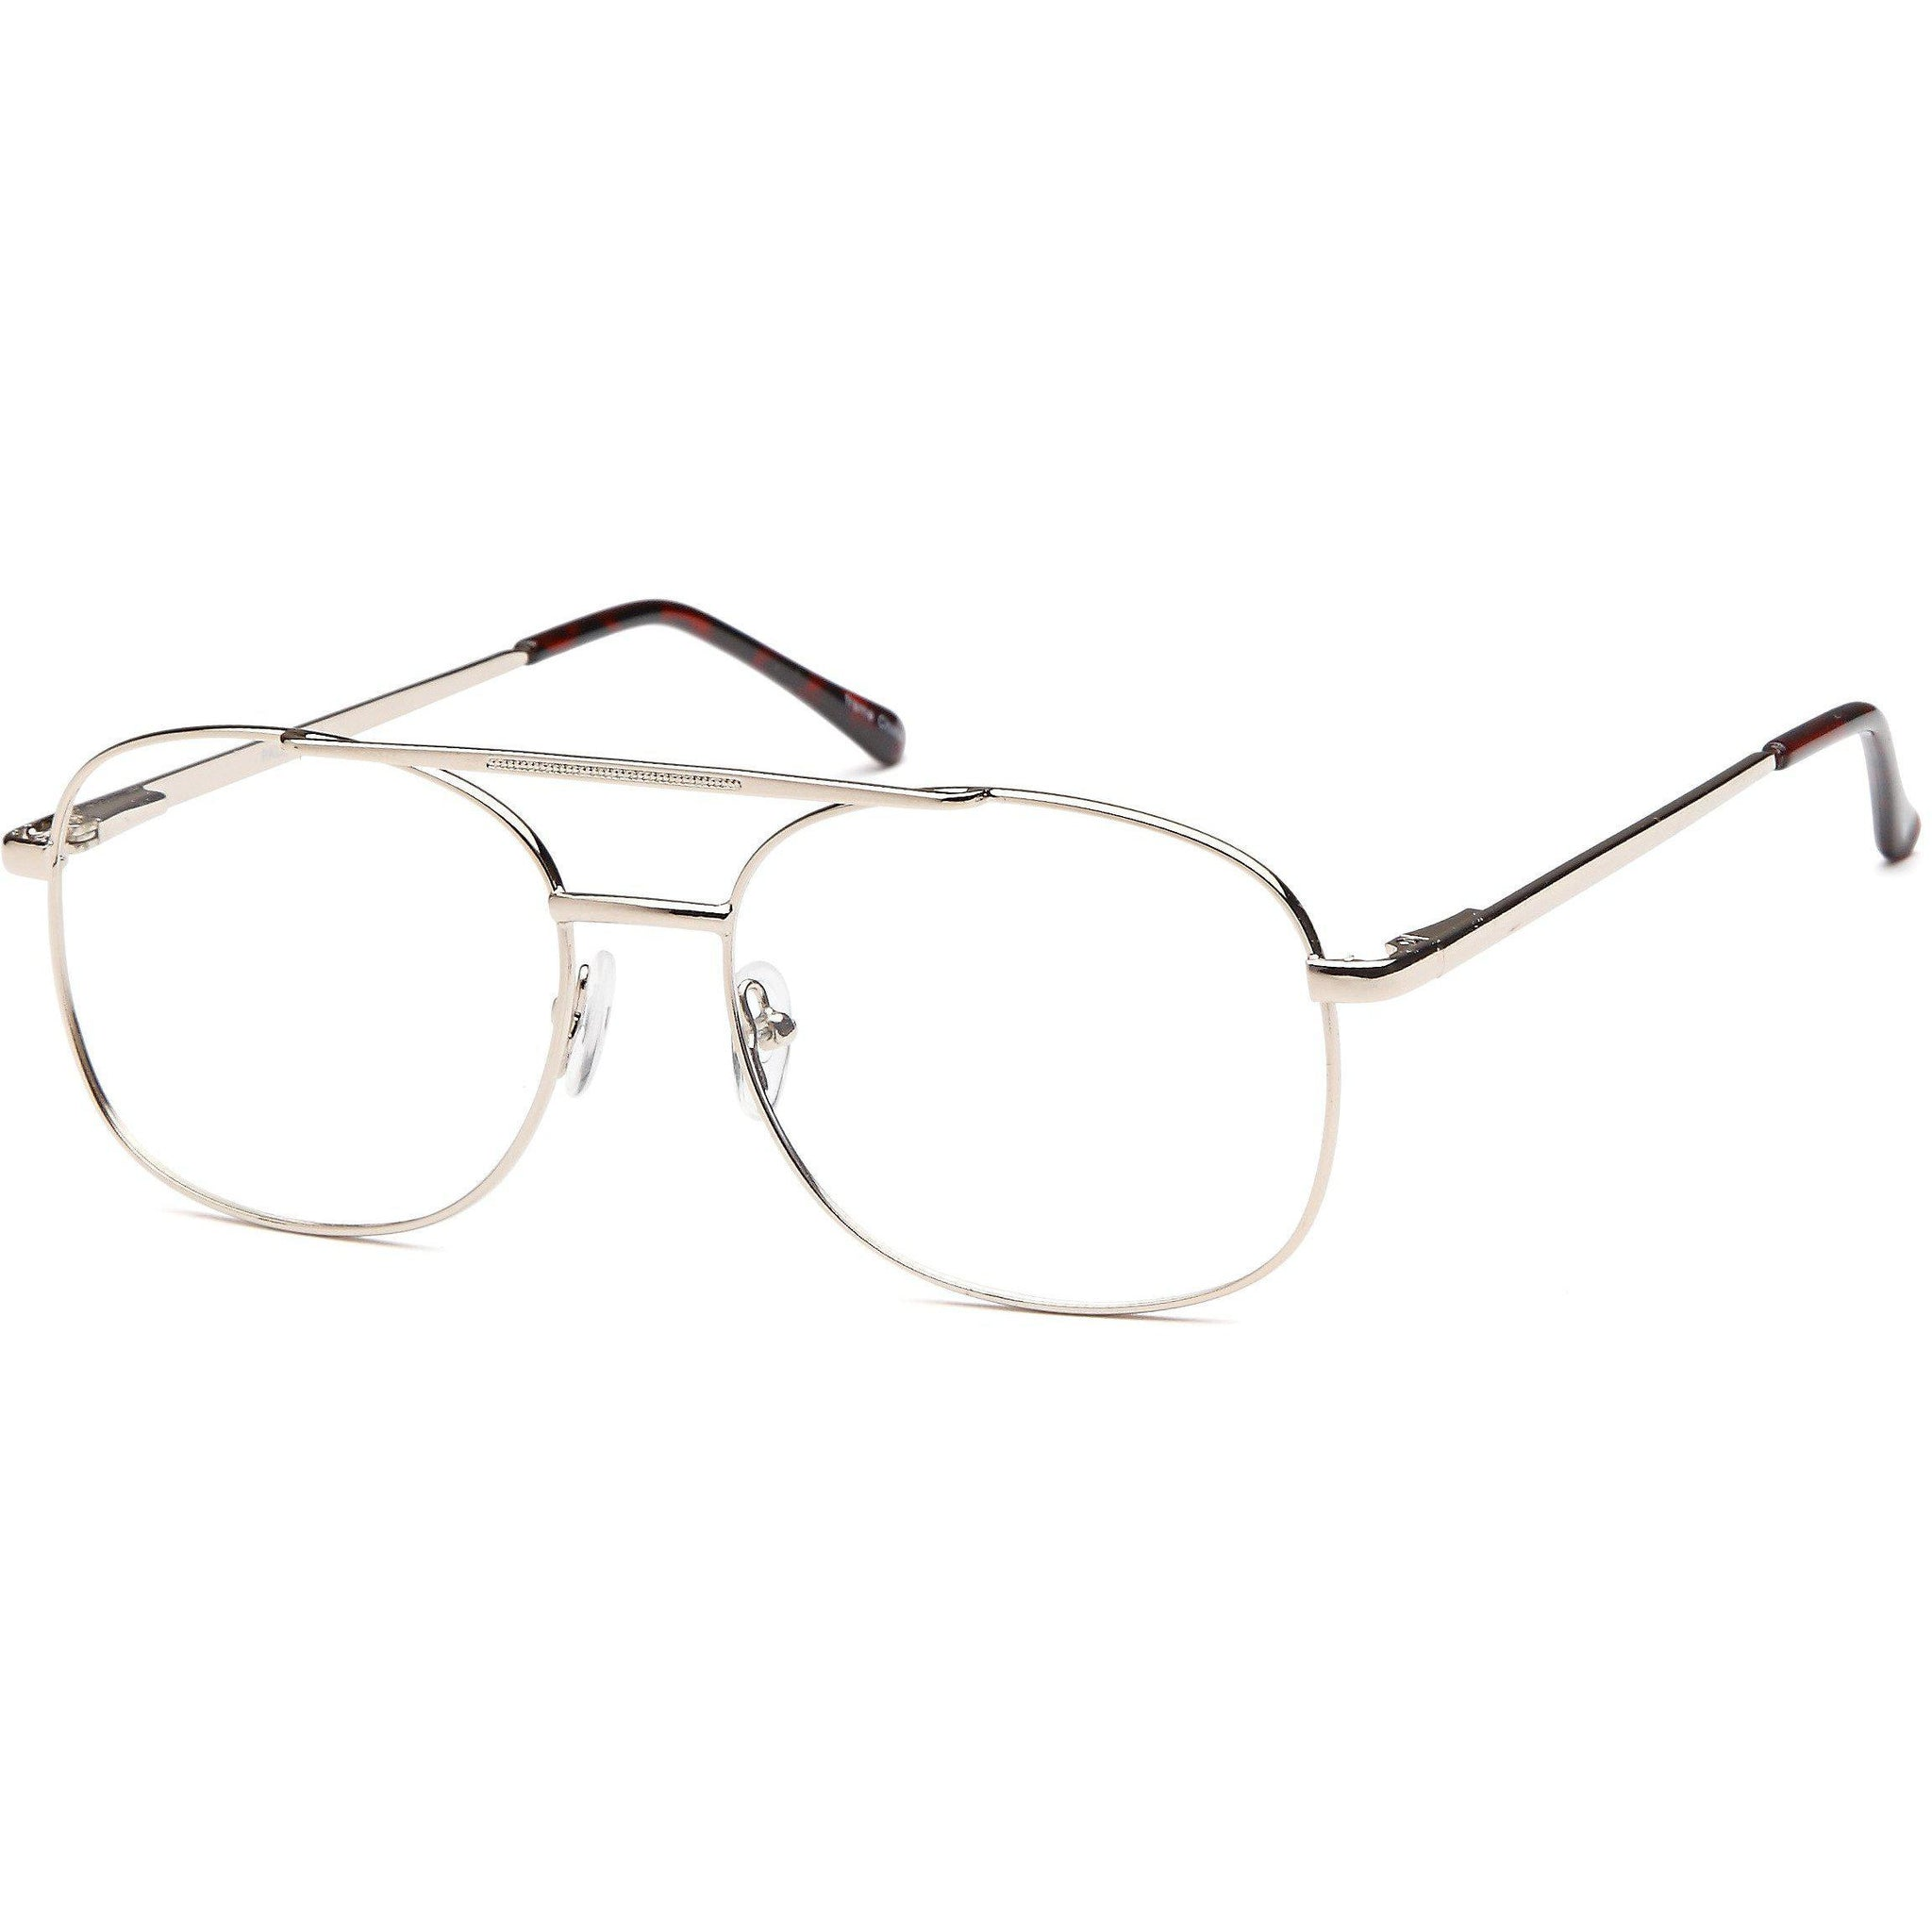 Appletree Prescription Glasses PALM Eyeglasses Frame